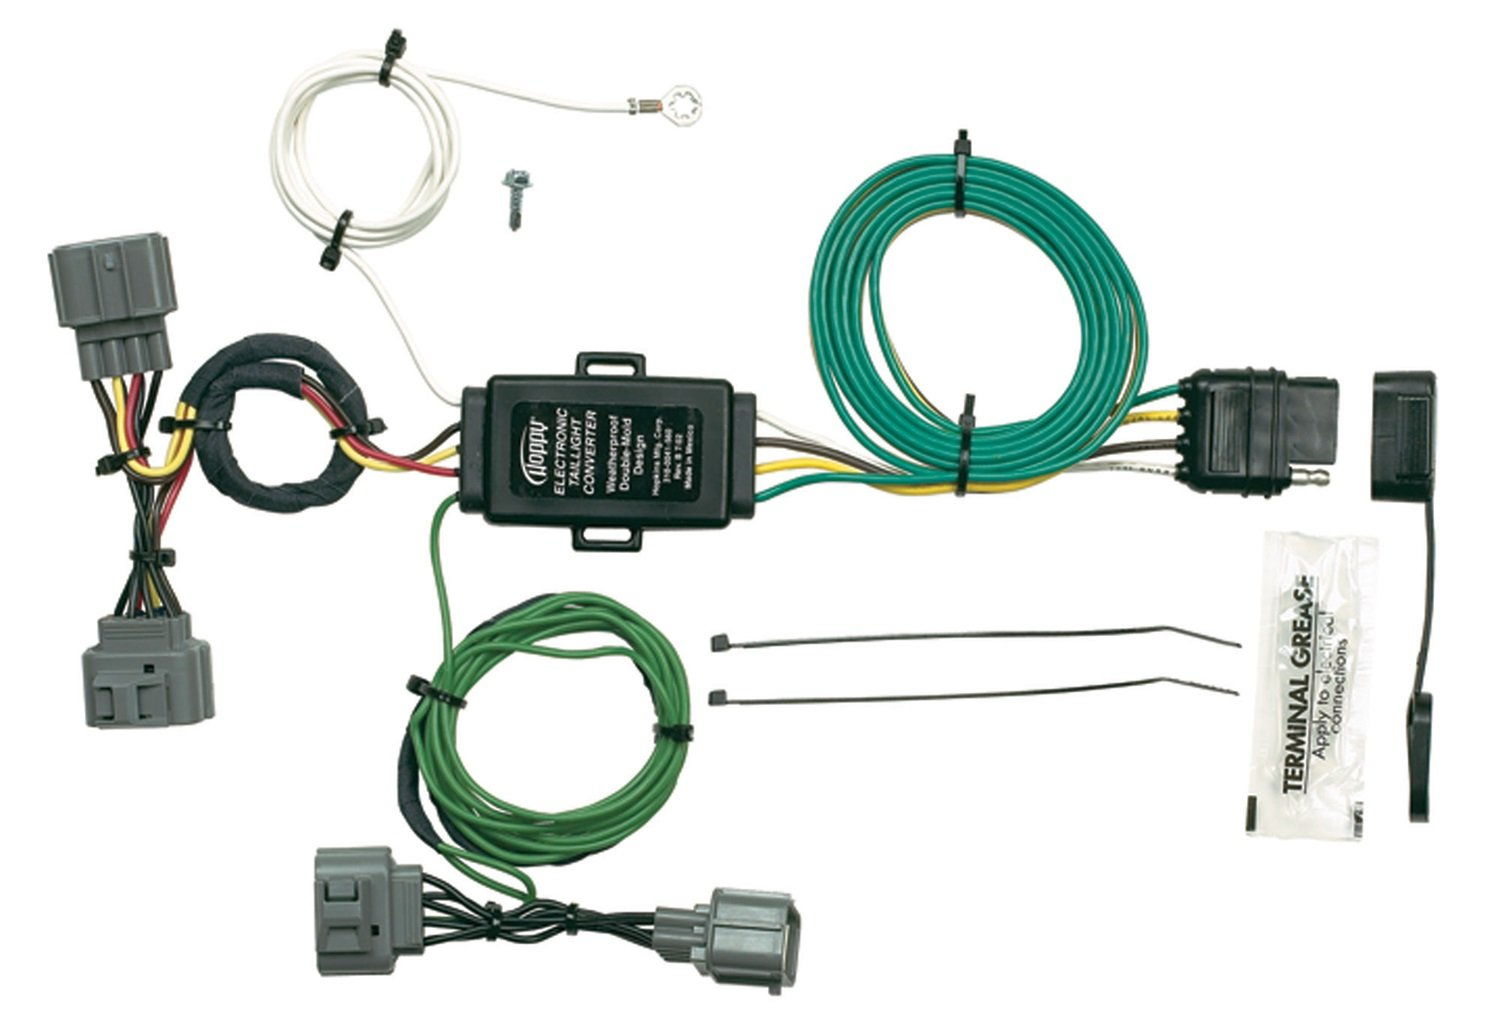 61uhFx0L6RL._SL1500_ amazon com hopkins 43125 plug in simple vehicle wiring kit trailer wiring harness honda ridgeline at crackthecode.co